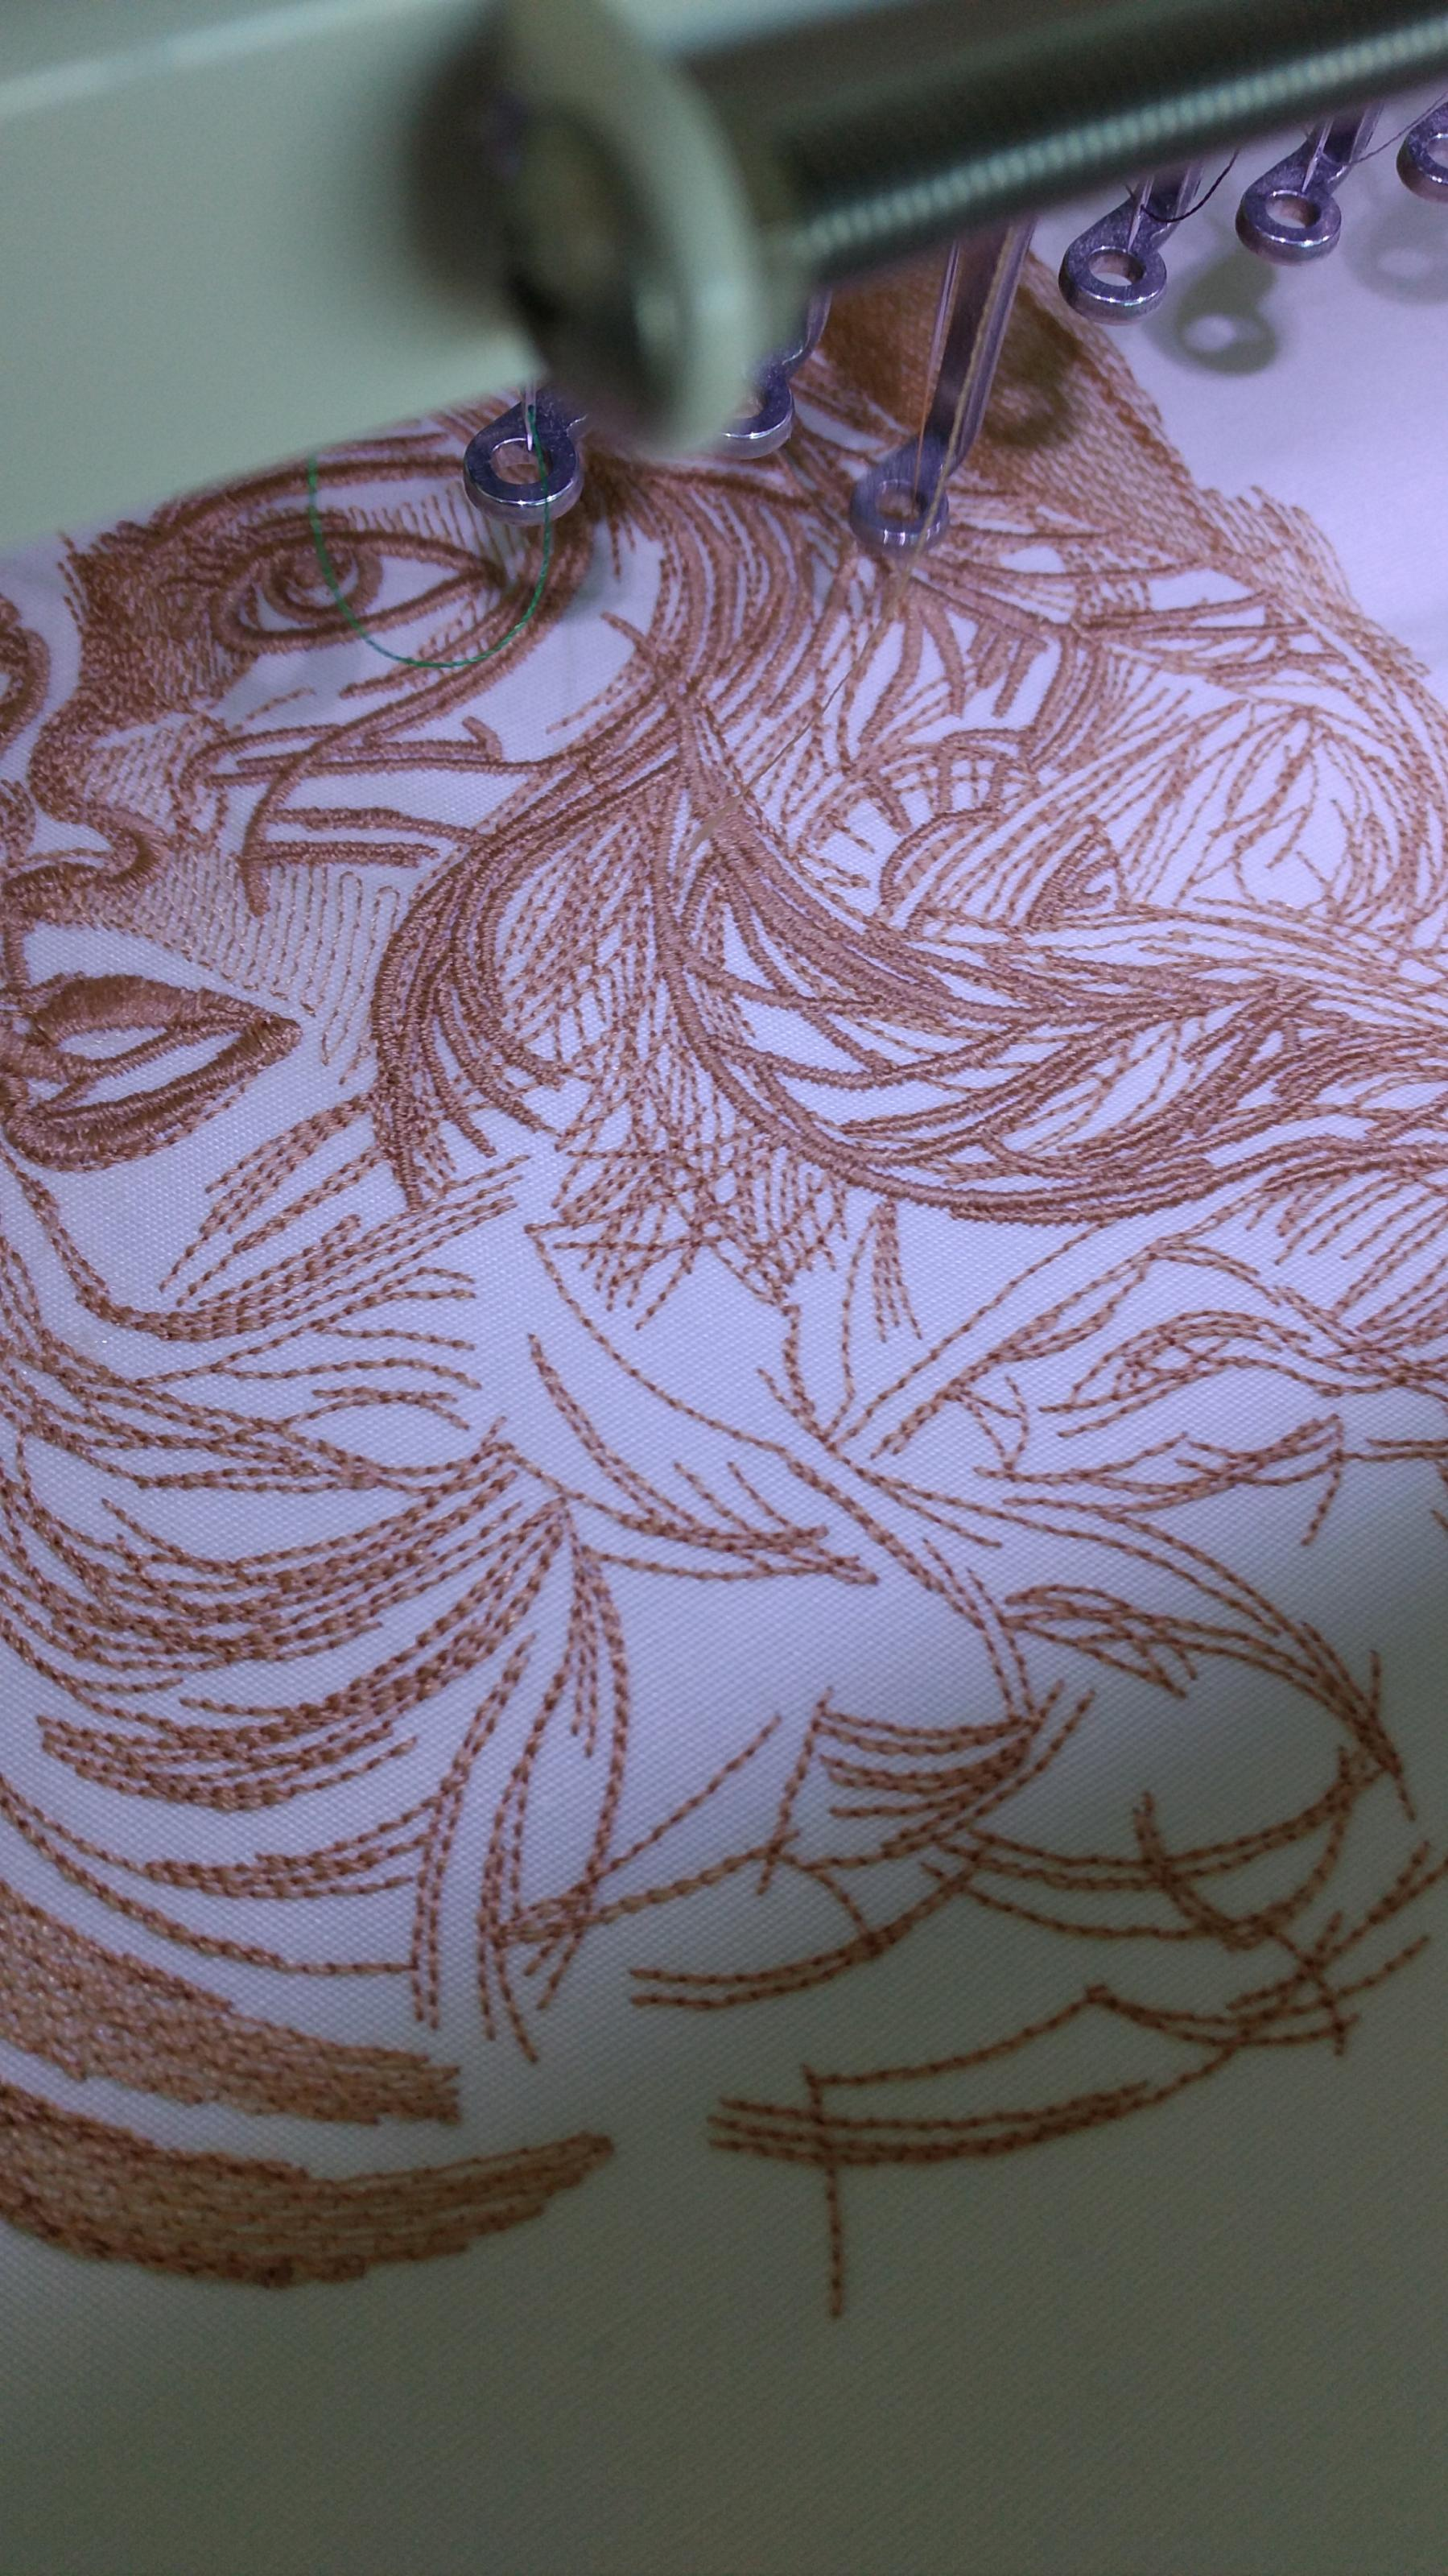 Work under young woman portrait embroidery design